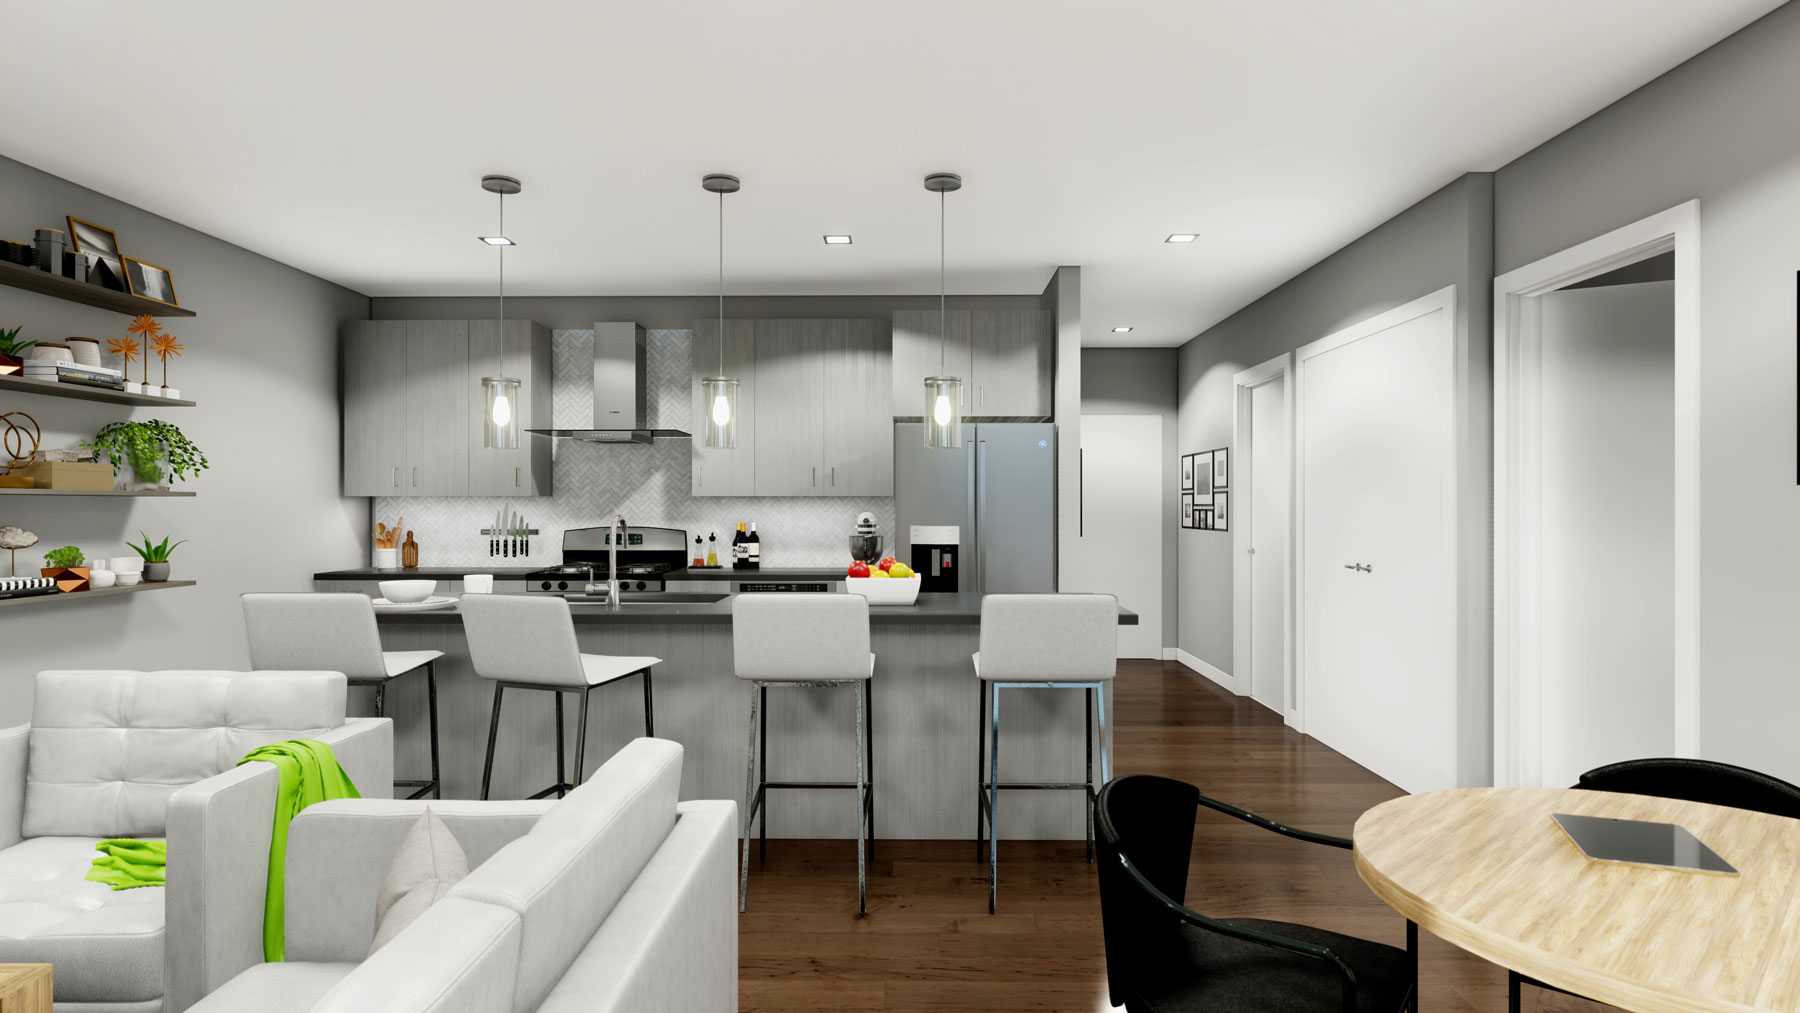 A rendering of a kitchen in one of the units